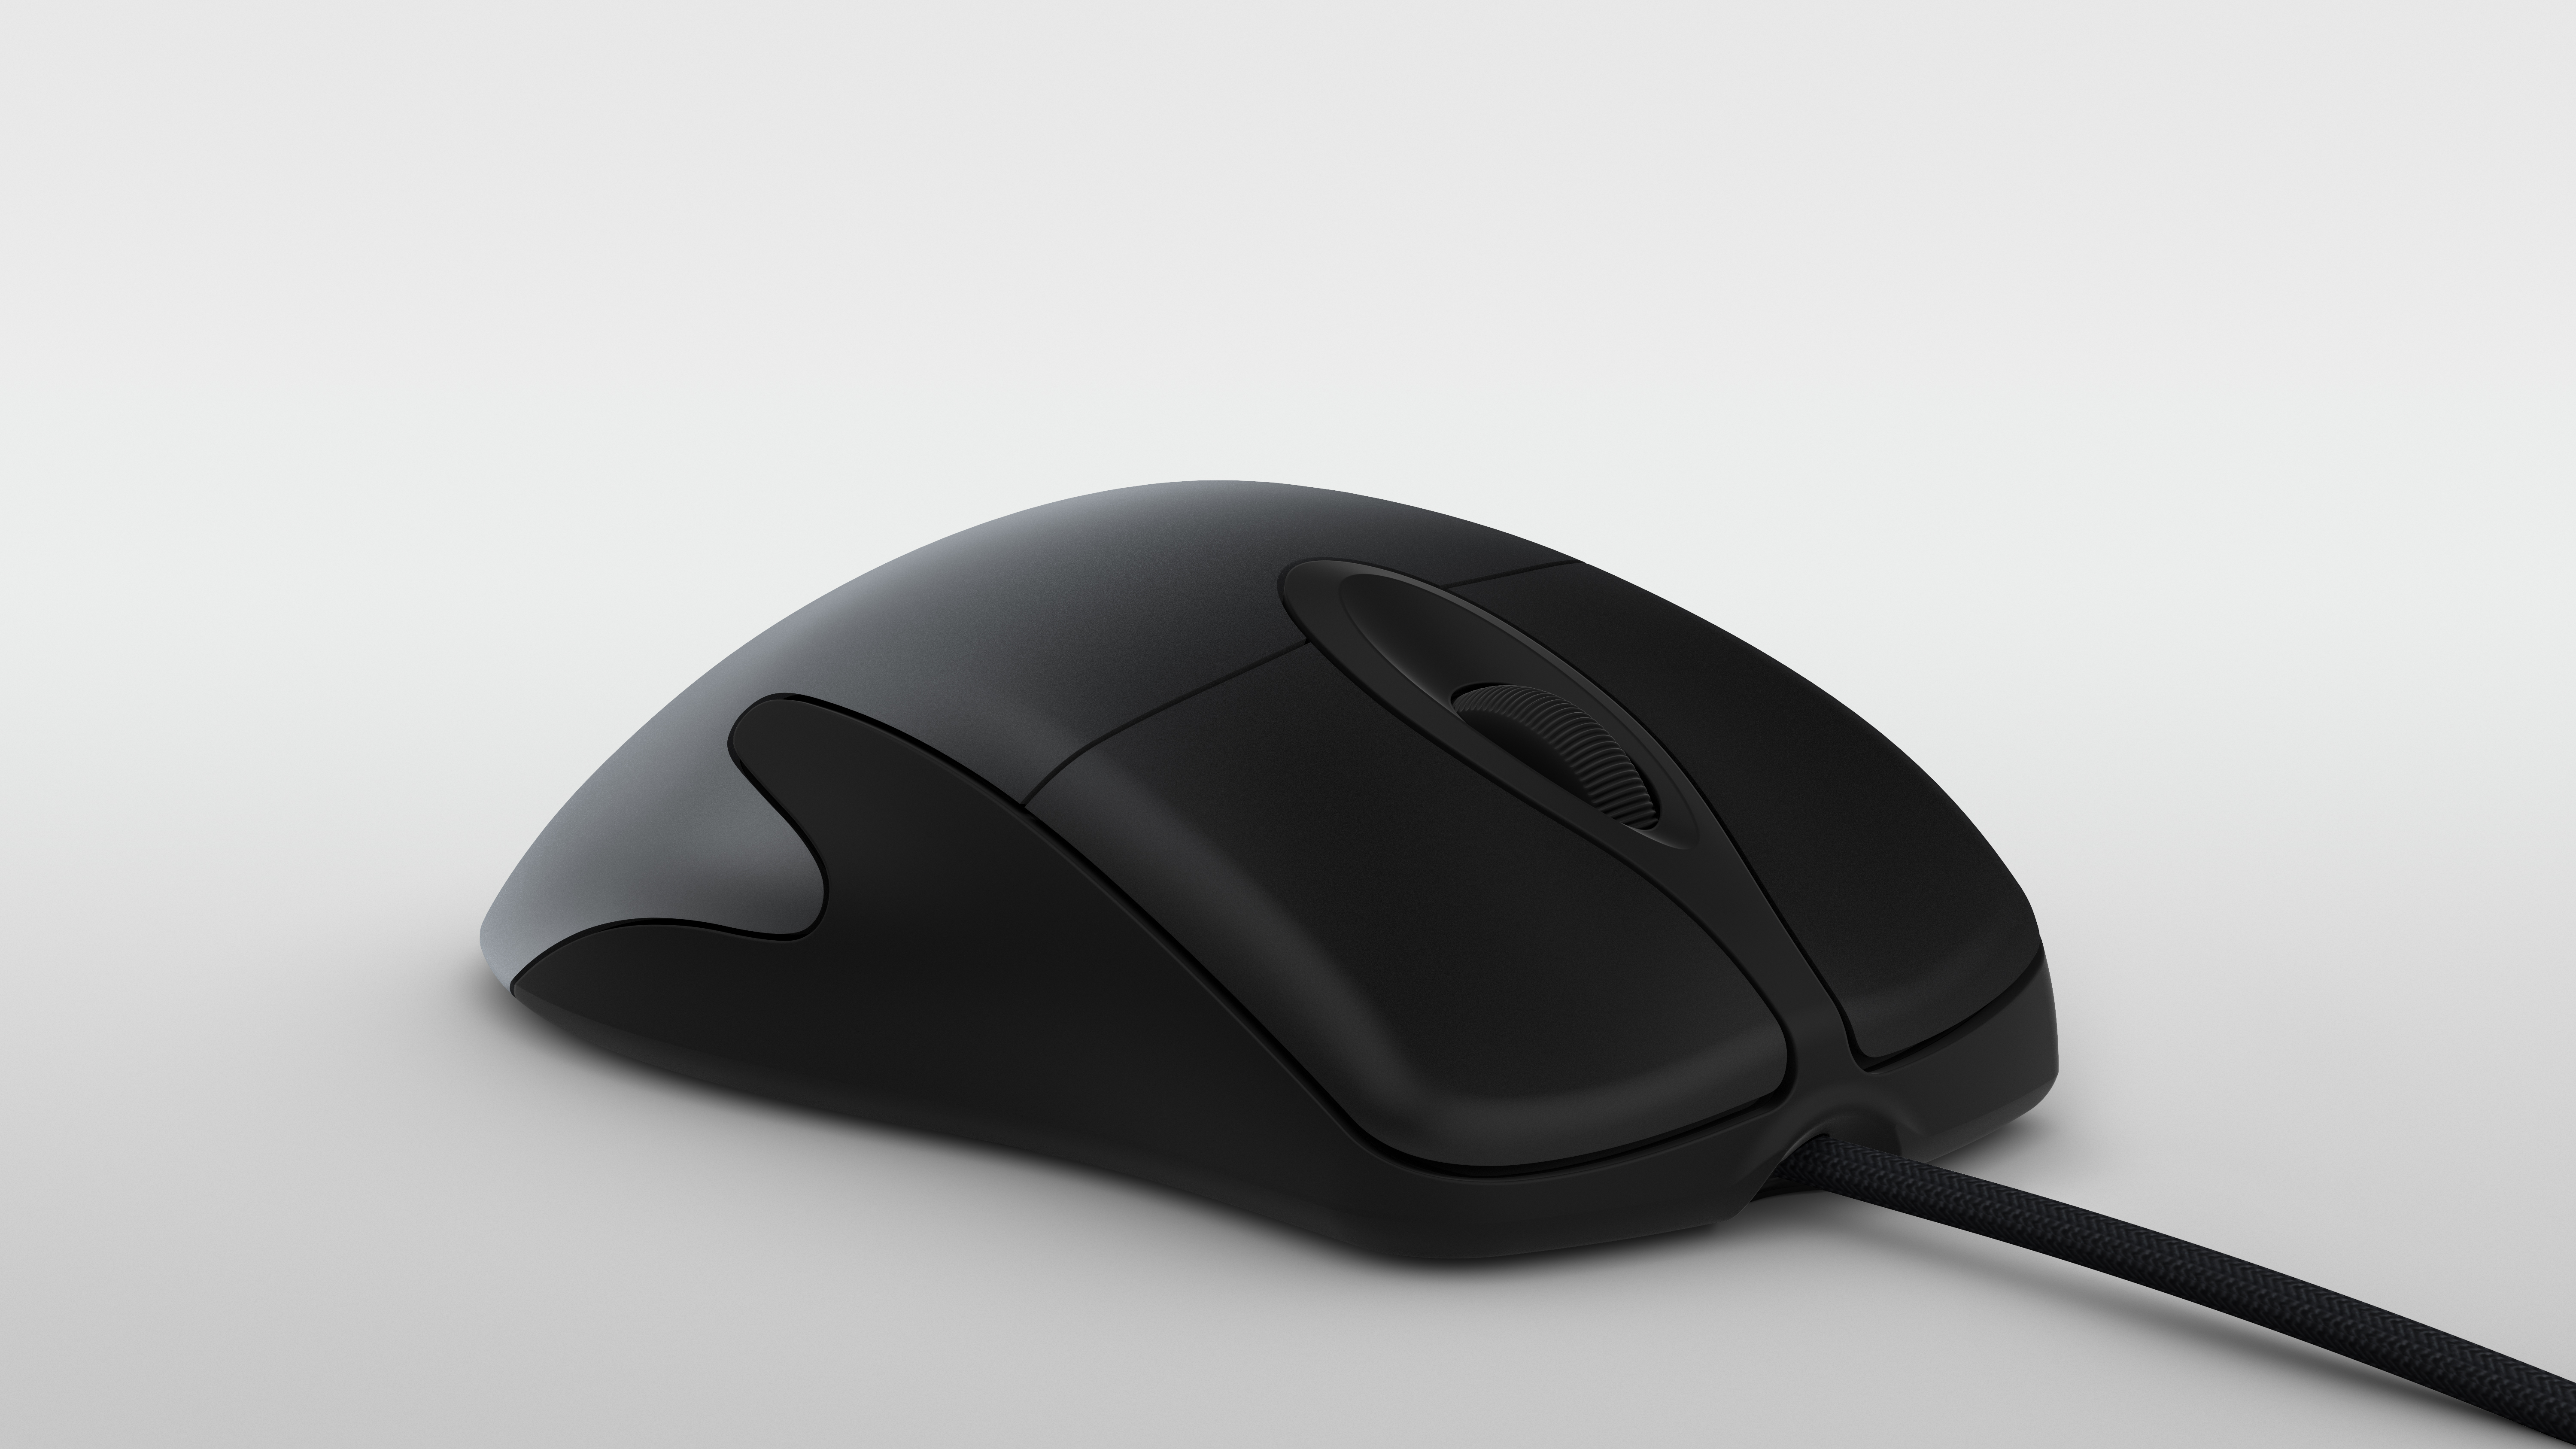 DRIVER UPDATE: MICROSOFT INTELLIMOUSE 6000